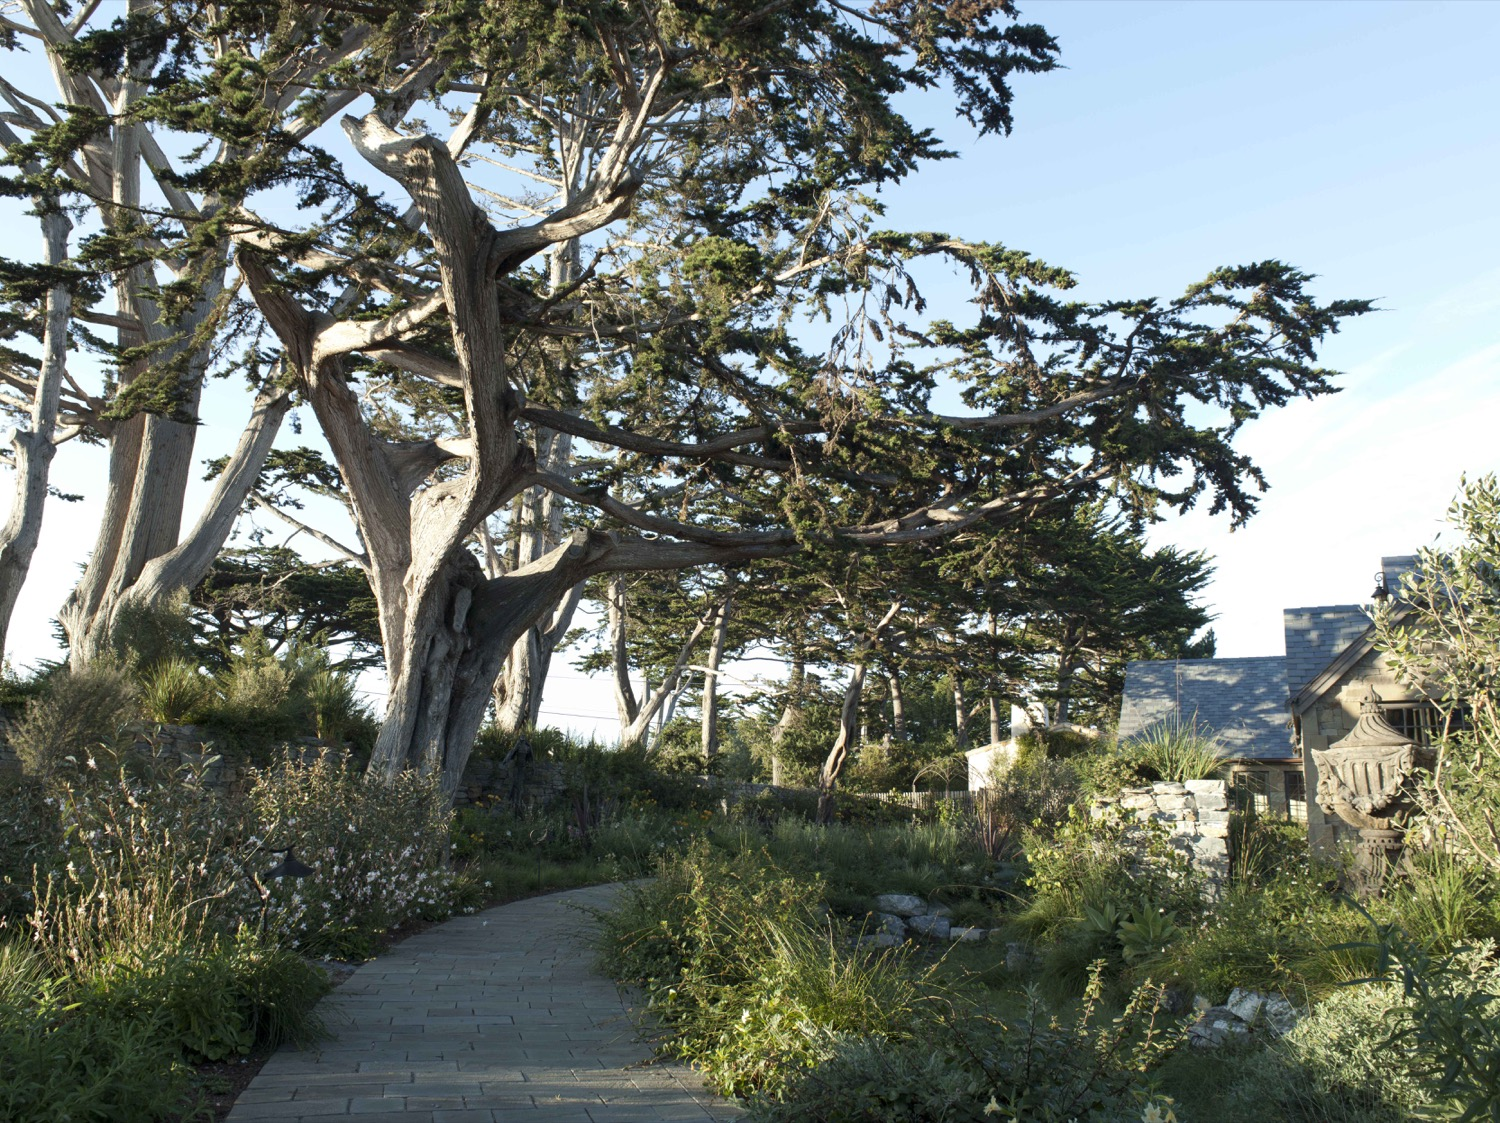 The circular path follows the arrangement of the established Monterey Cypress and provides the organizational structure of the garden layout.